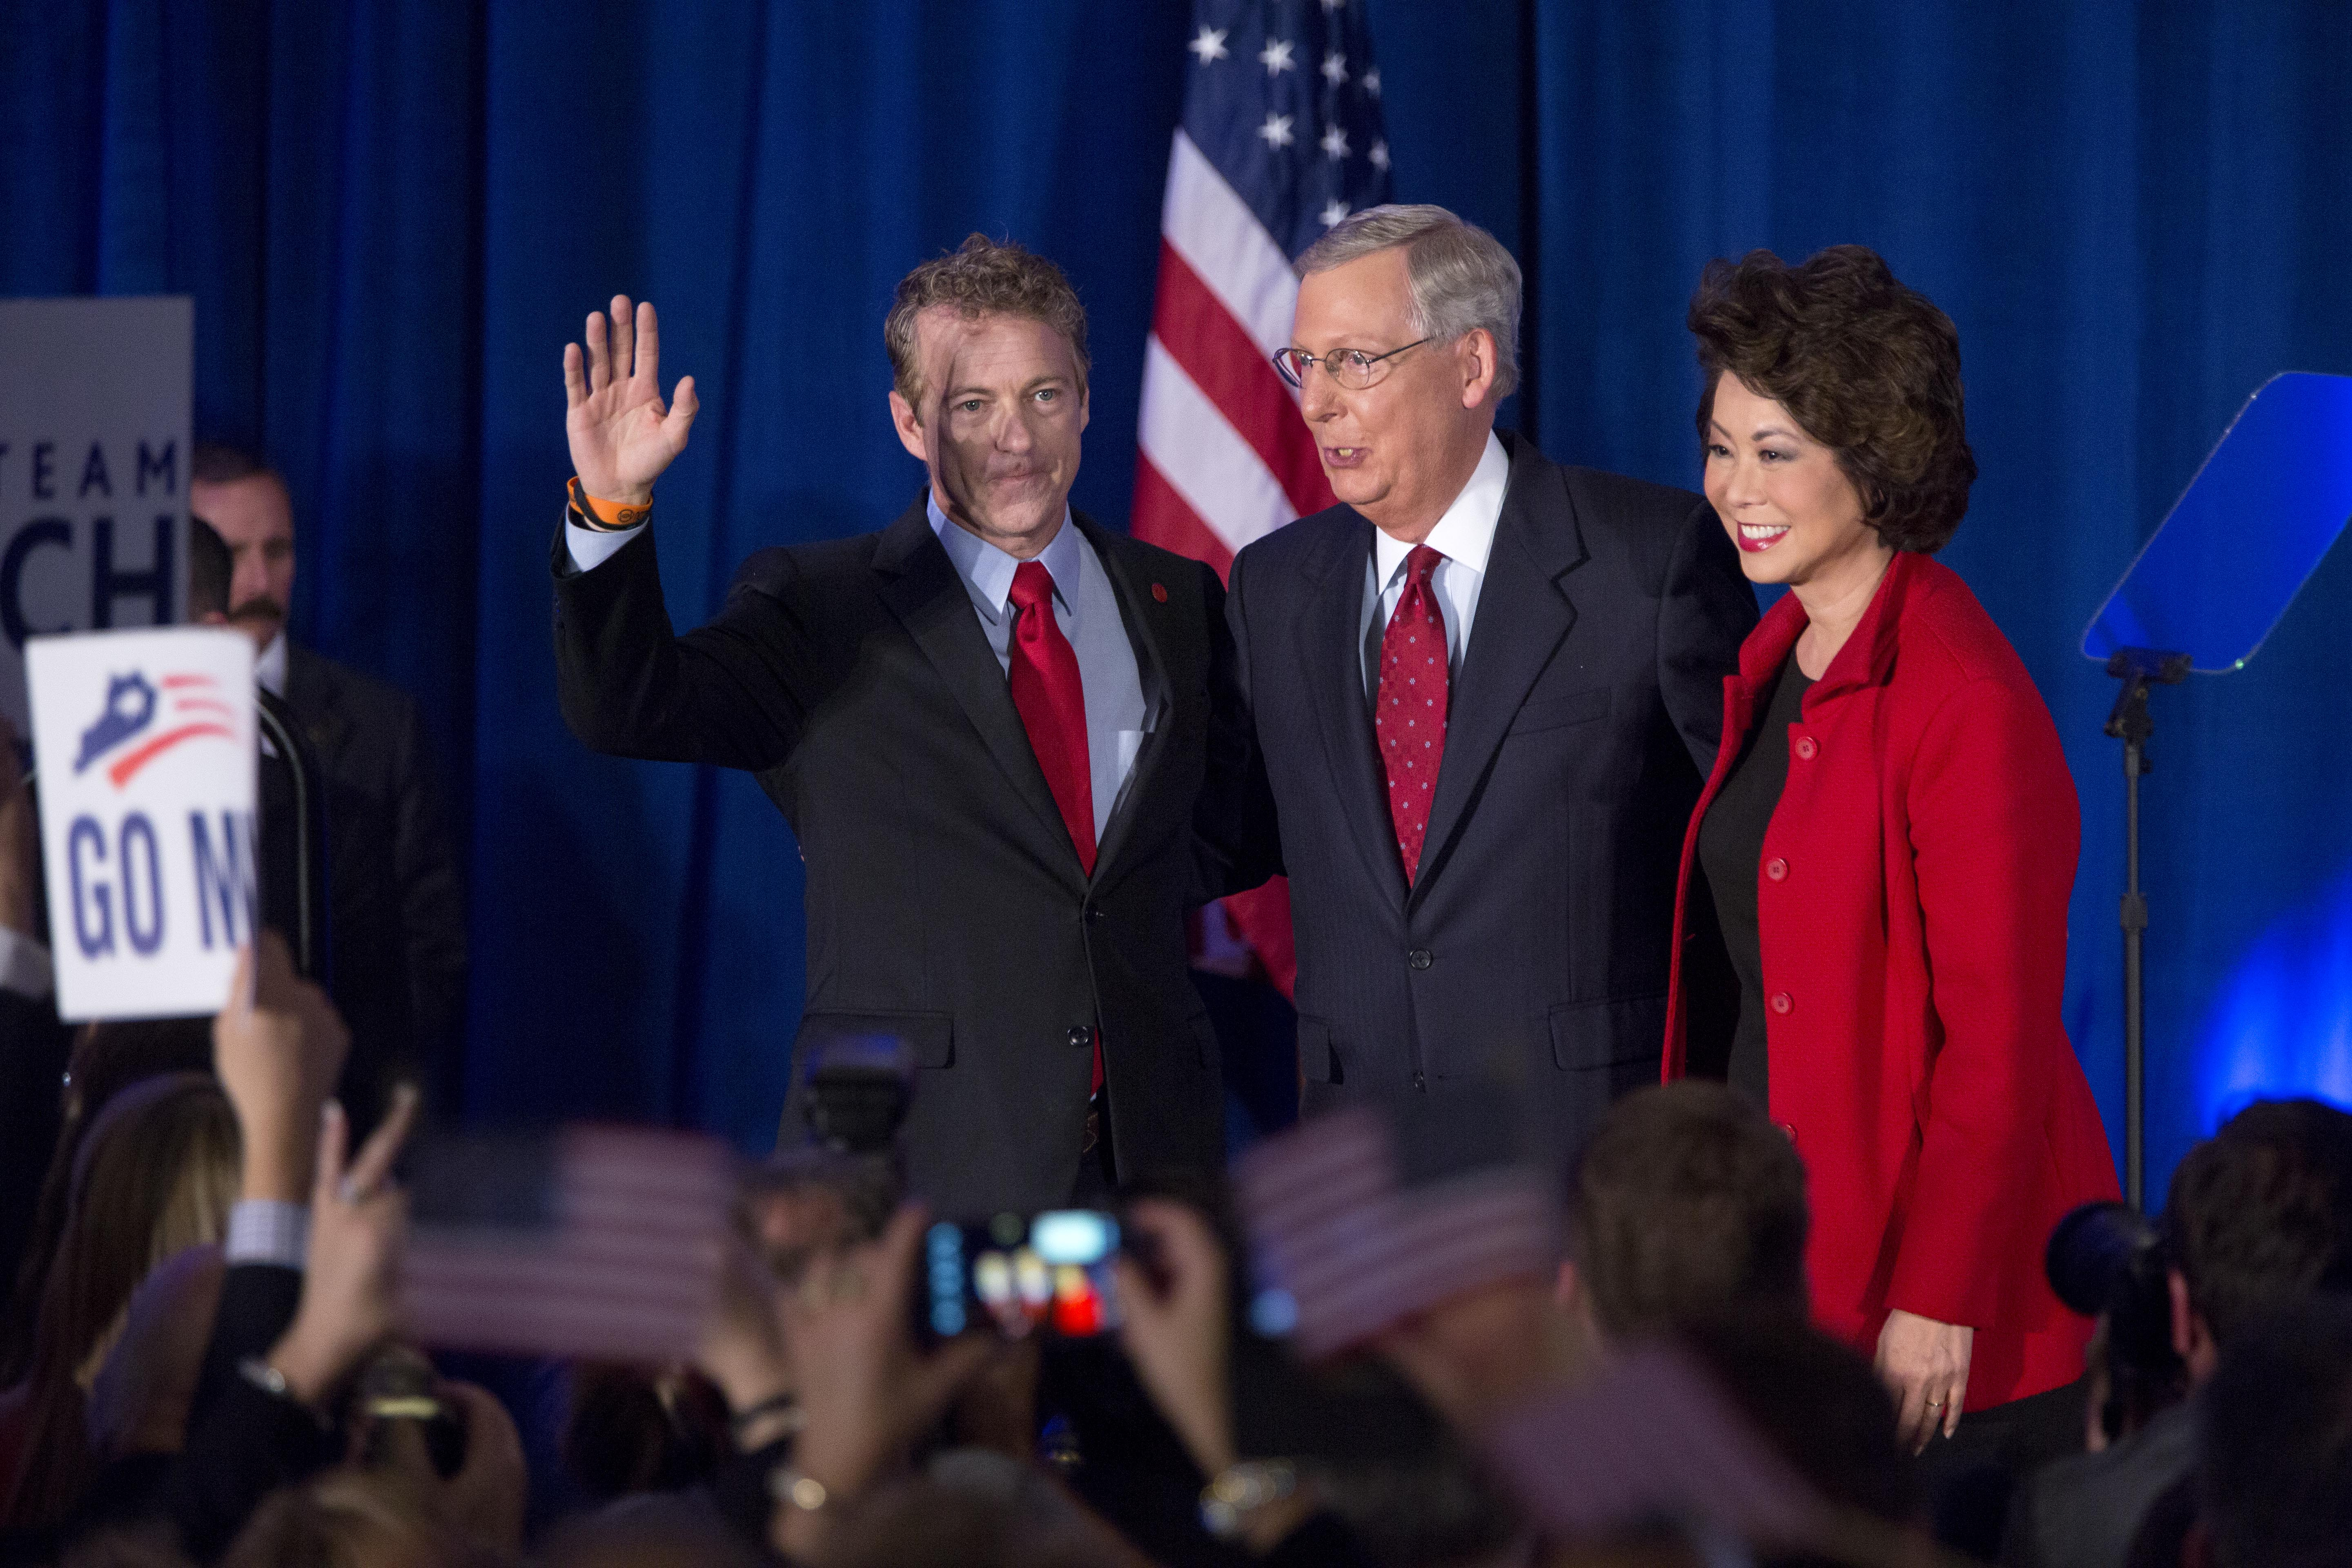 U.S. Sen. Mitch McConnell celebrates with his wife Elaine Chao and U.S. Sen. Rand Paul at his election night event November 4, 2014 in Louisville, Kentucky. (Photo by Aaron P. Bernstein/Getty Images)